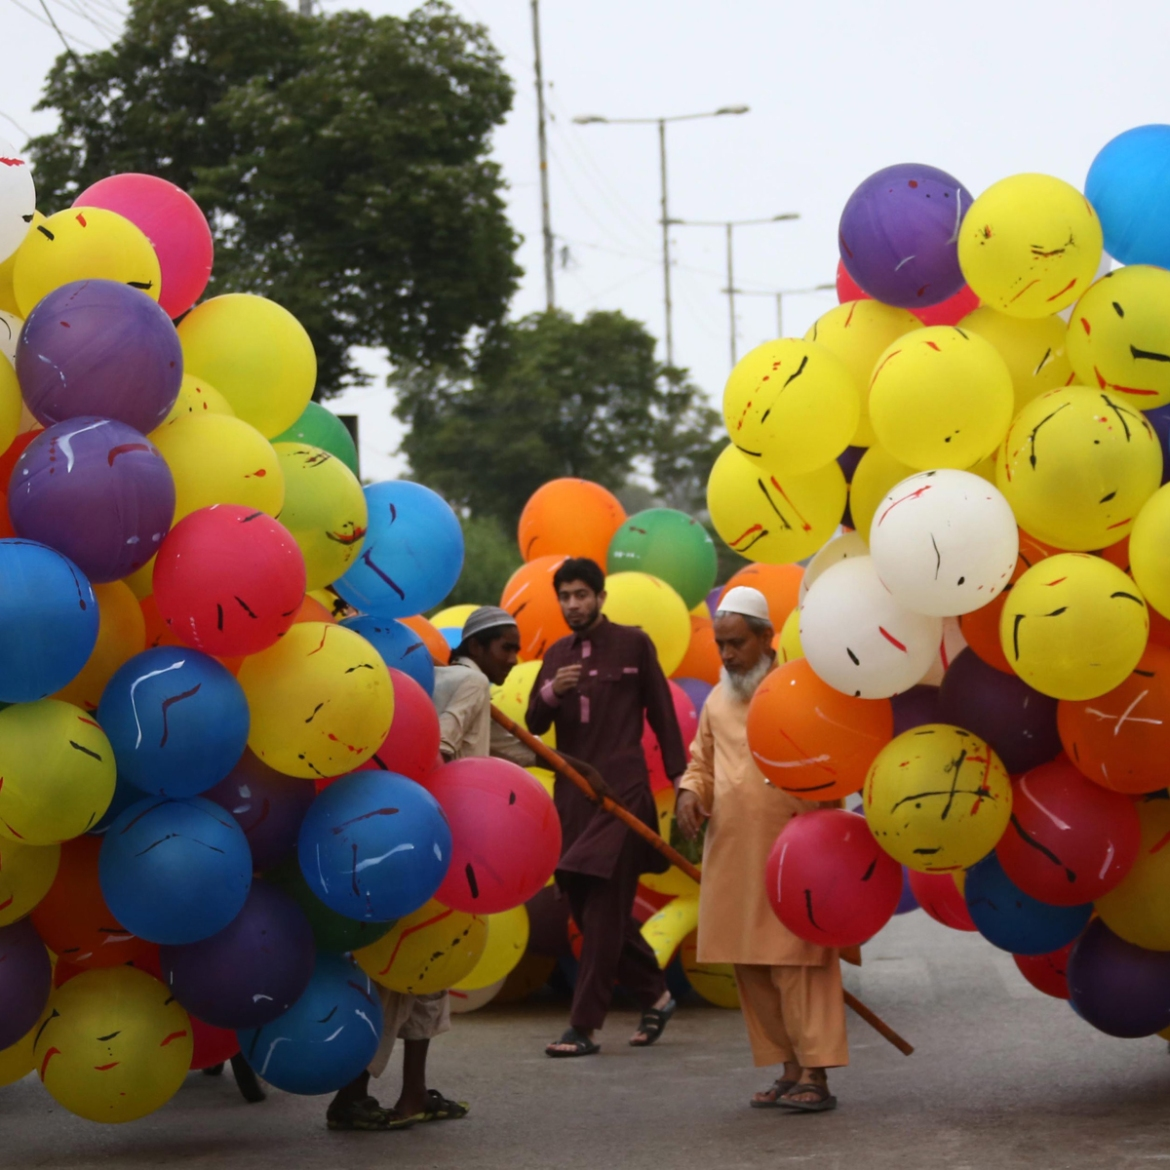 Pakistani men sell balloons after Eid al-Fitr prayers at a mosque in Karachi. [Rehan Khan/EPA]